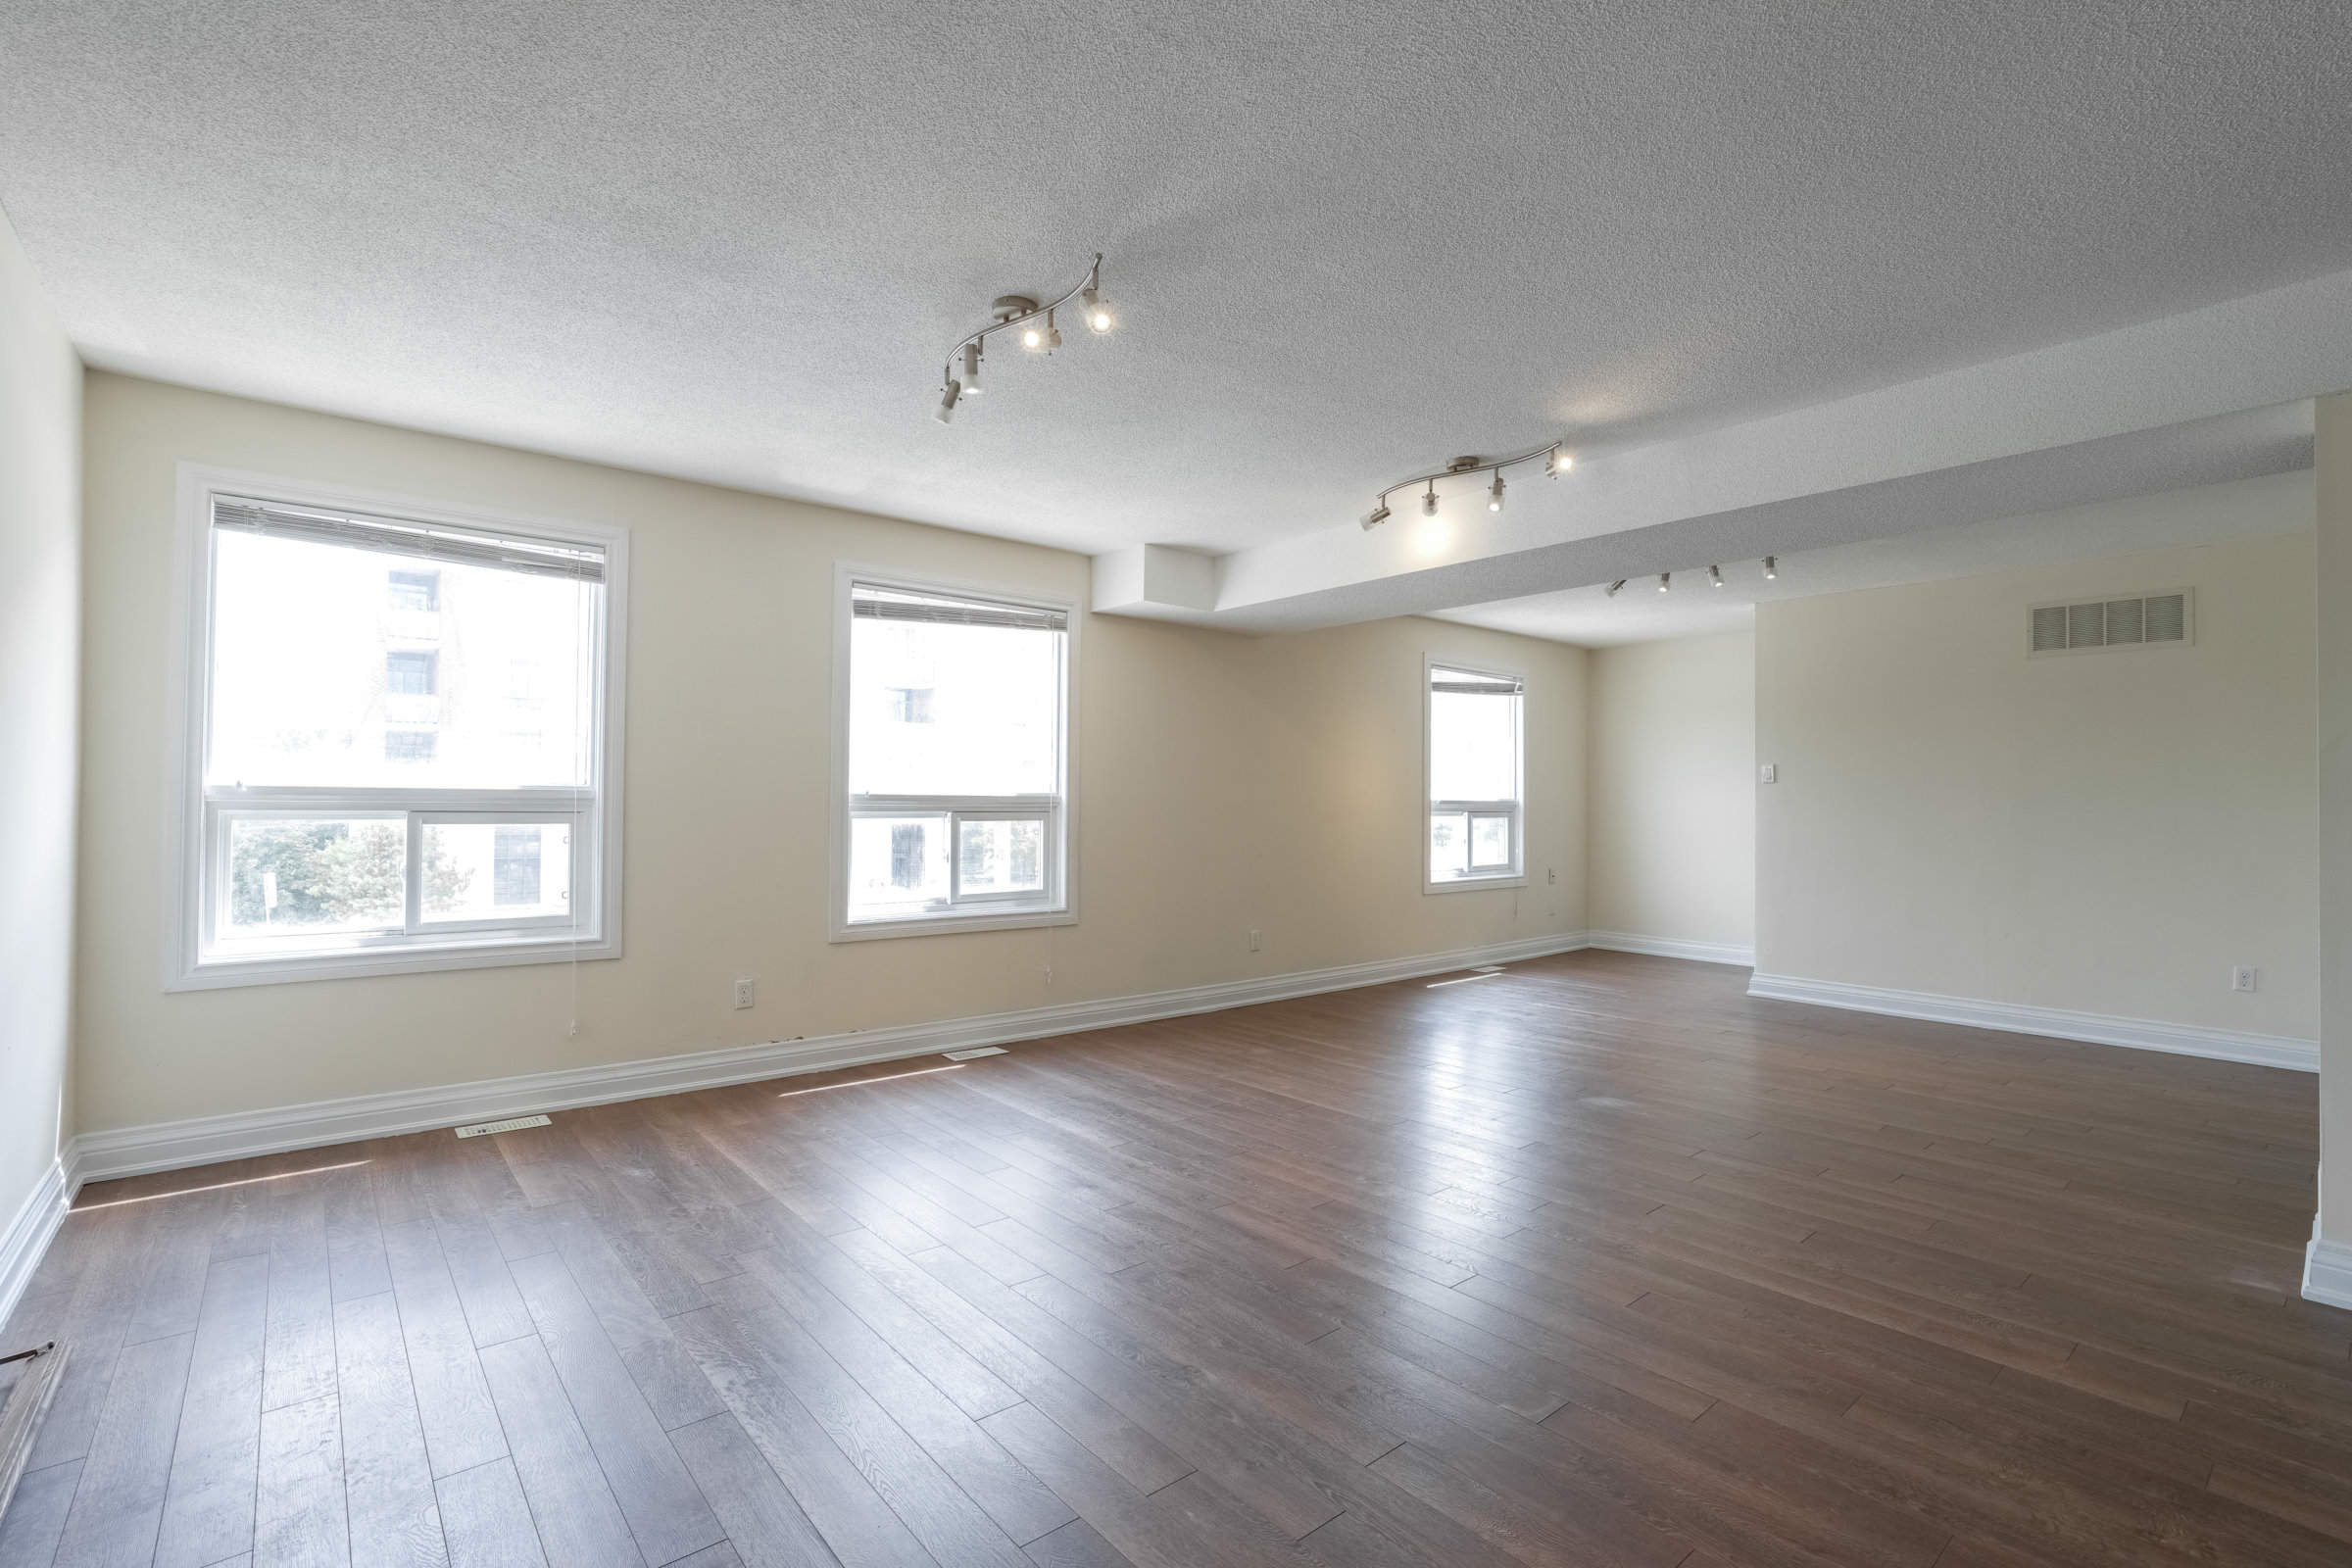 hardwood flooring etobicoke of 4130 dundas street west etobicoke by margarita celuch with 533757